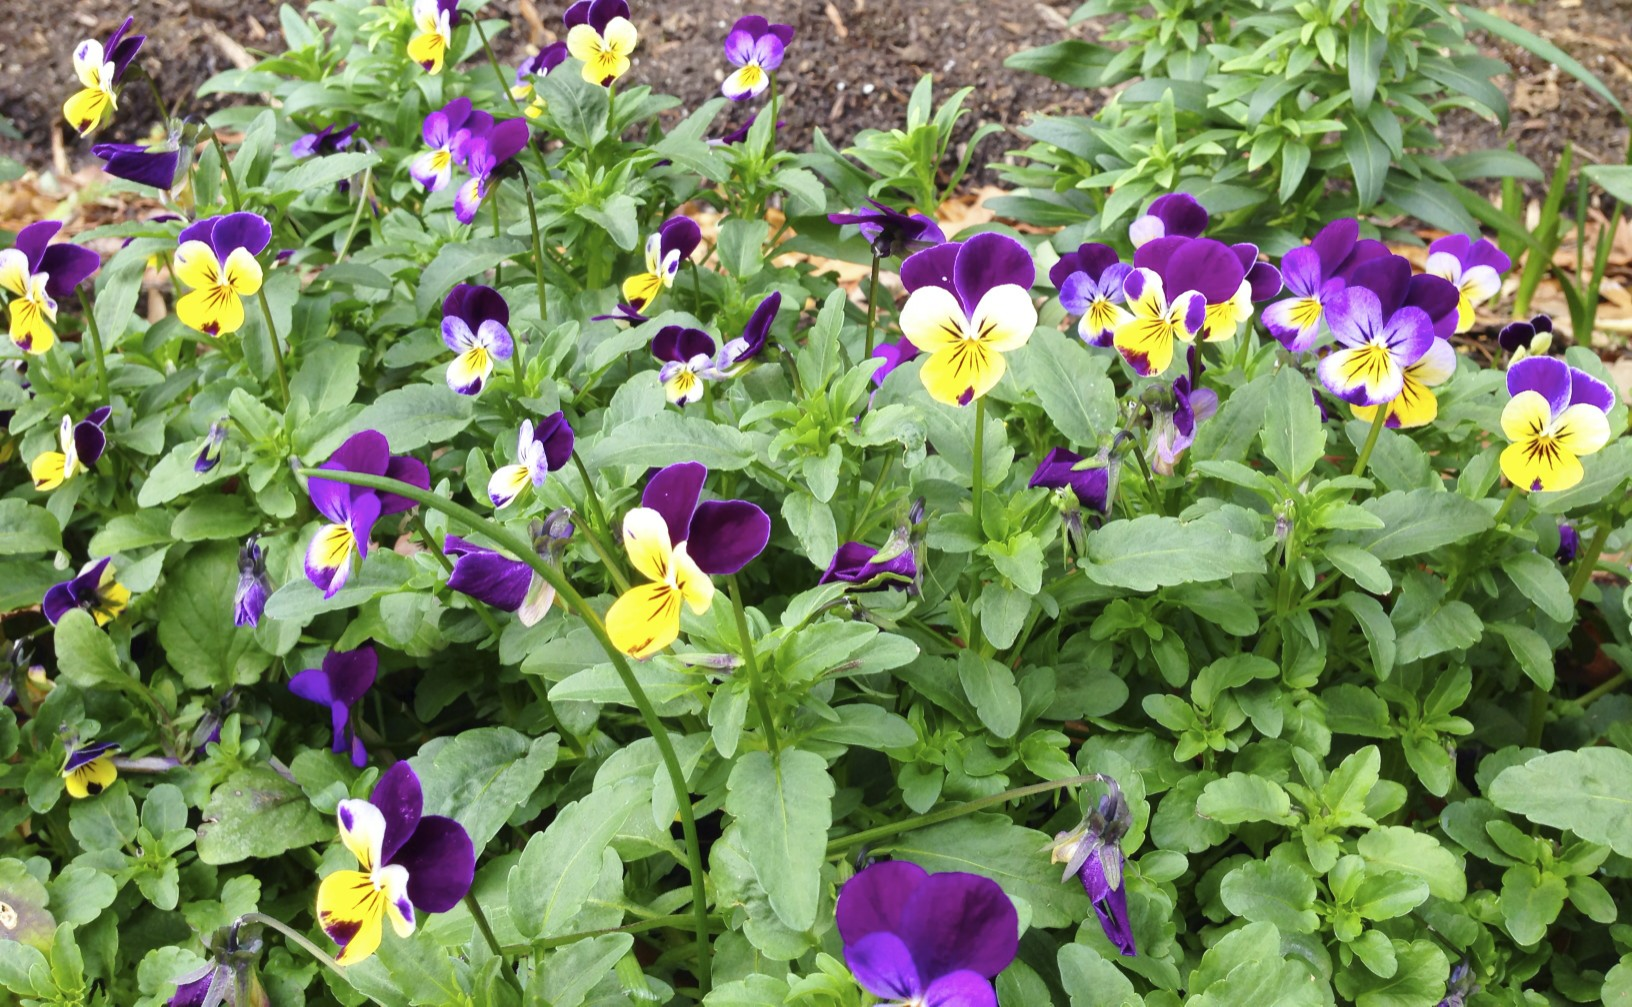 pansies in the Eudora Welty garden